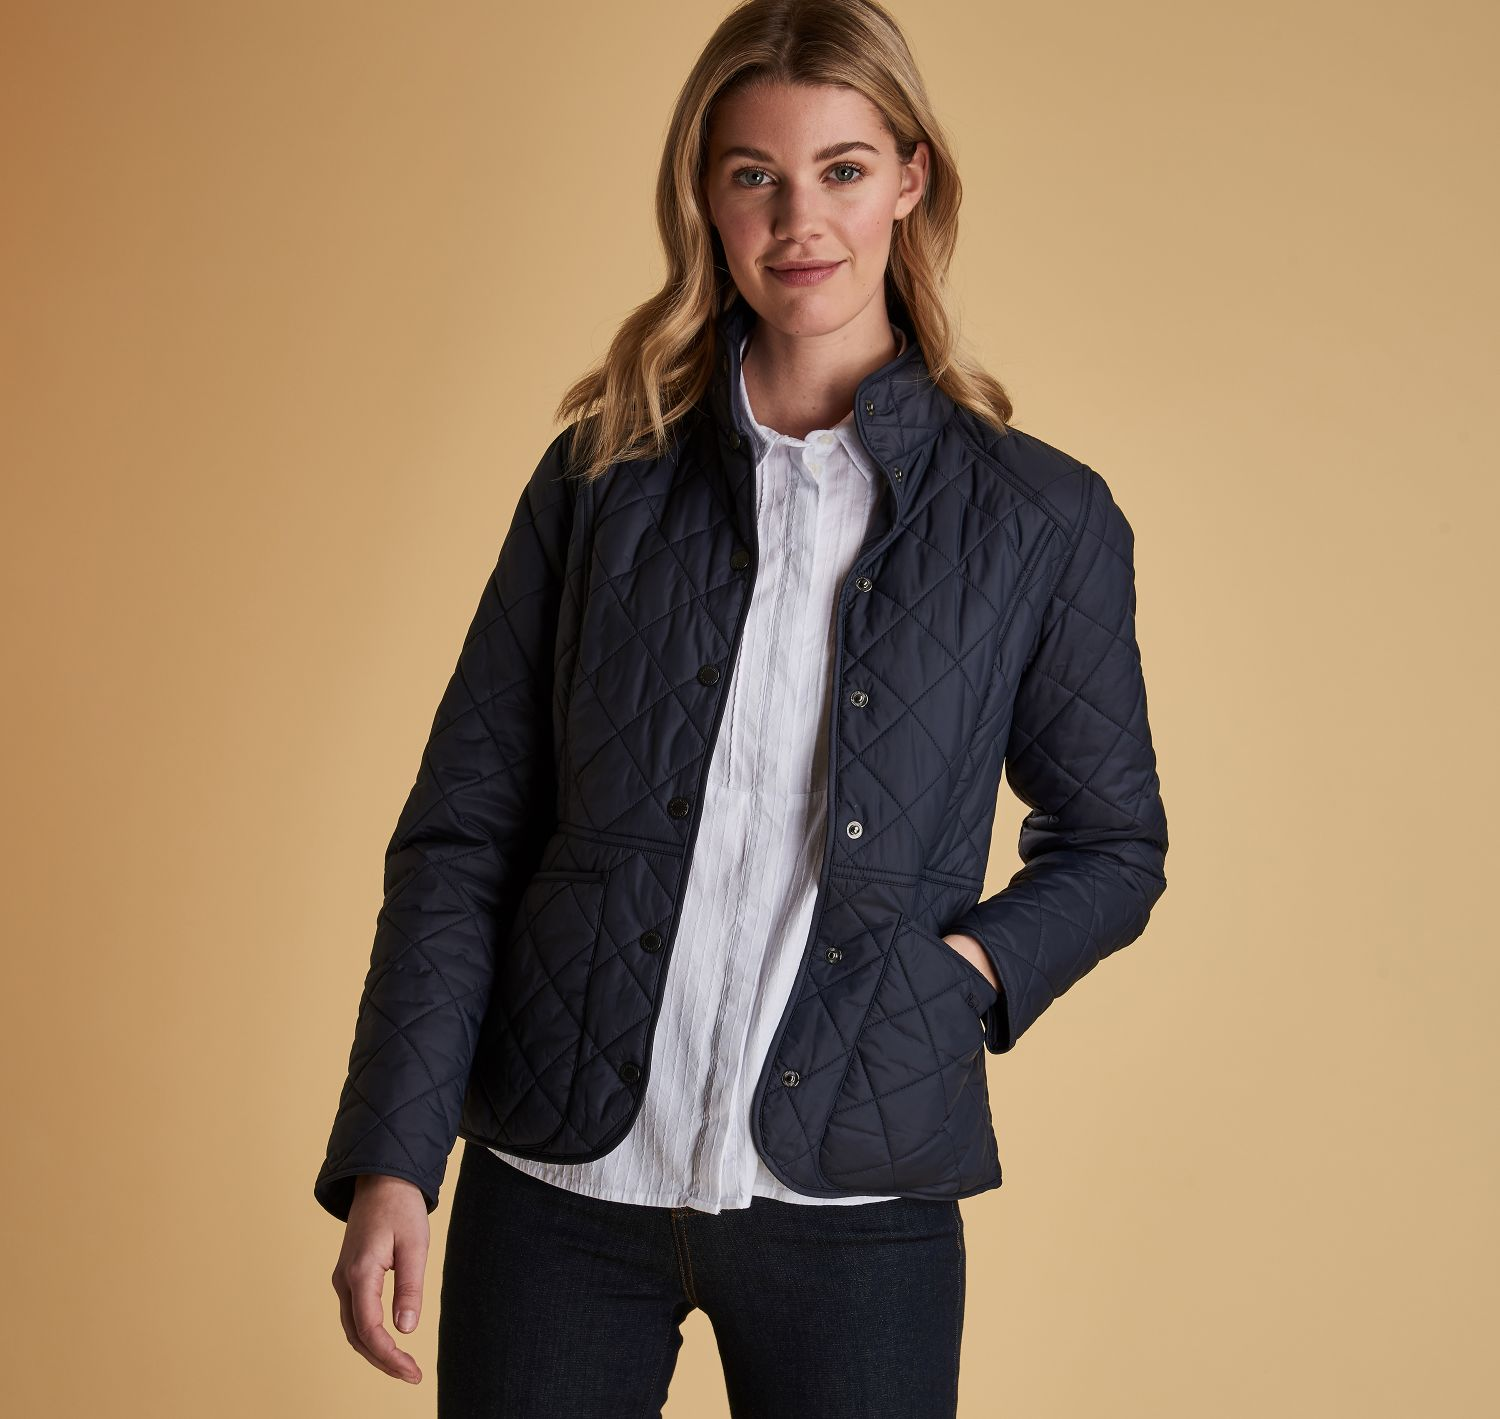 barbour fell jacket